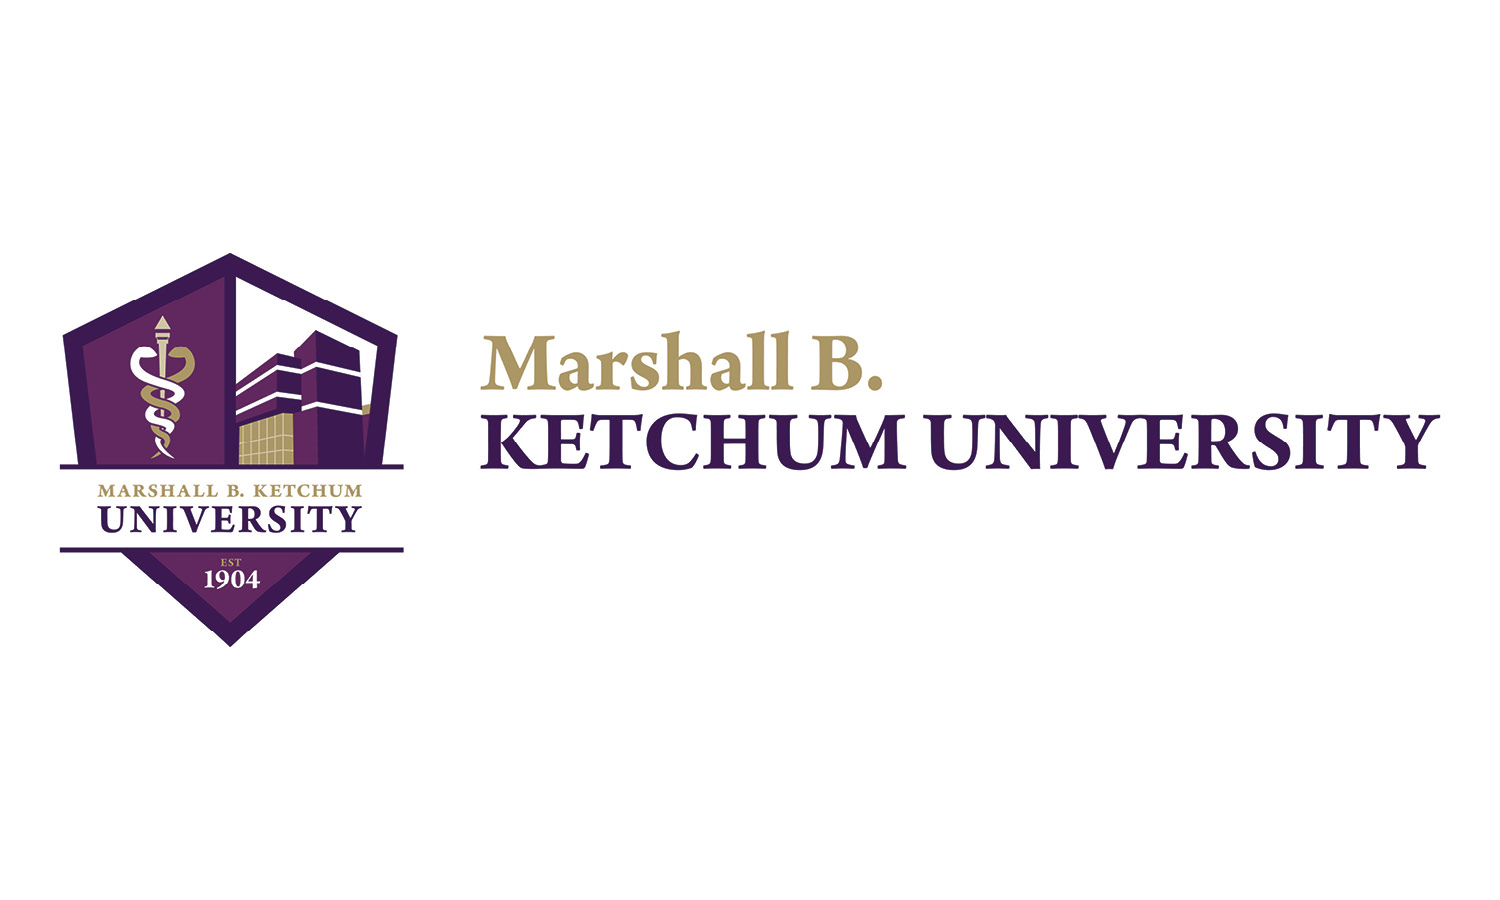 Marshall B. Ketchum University